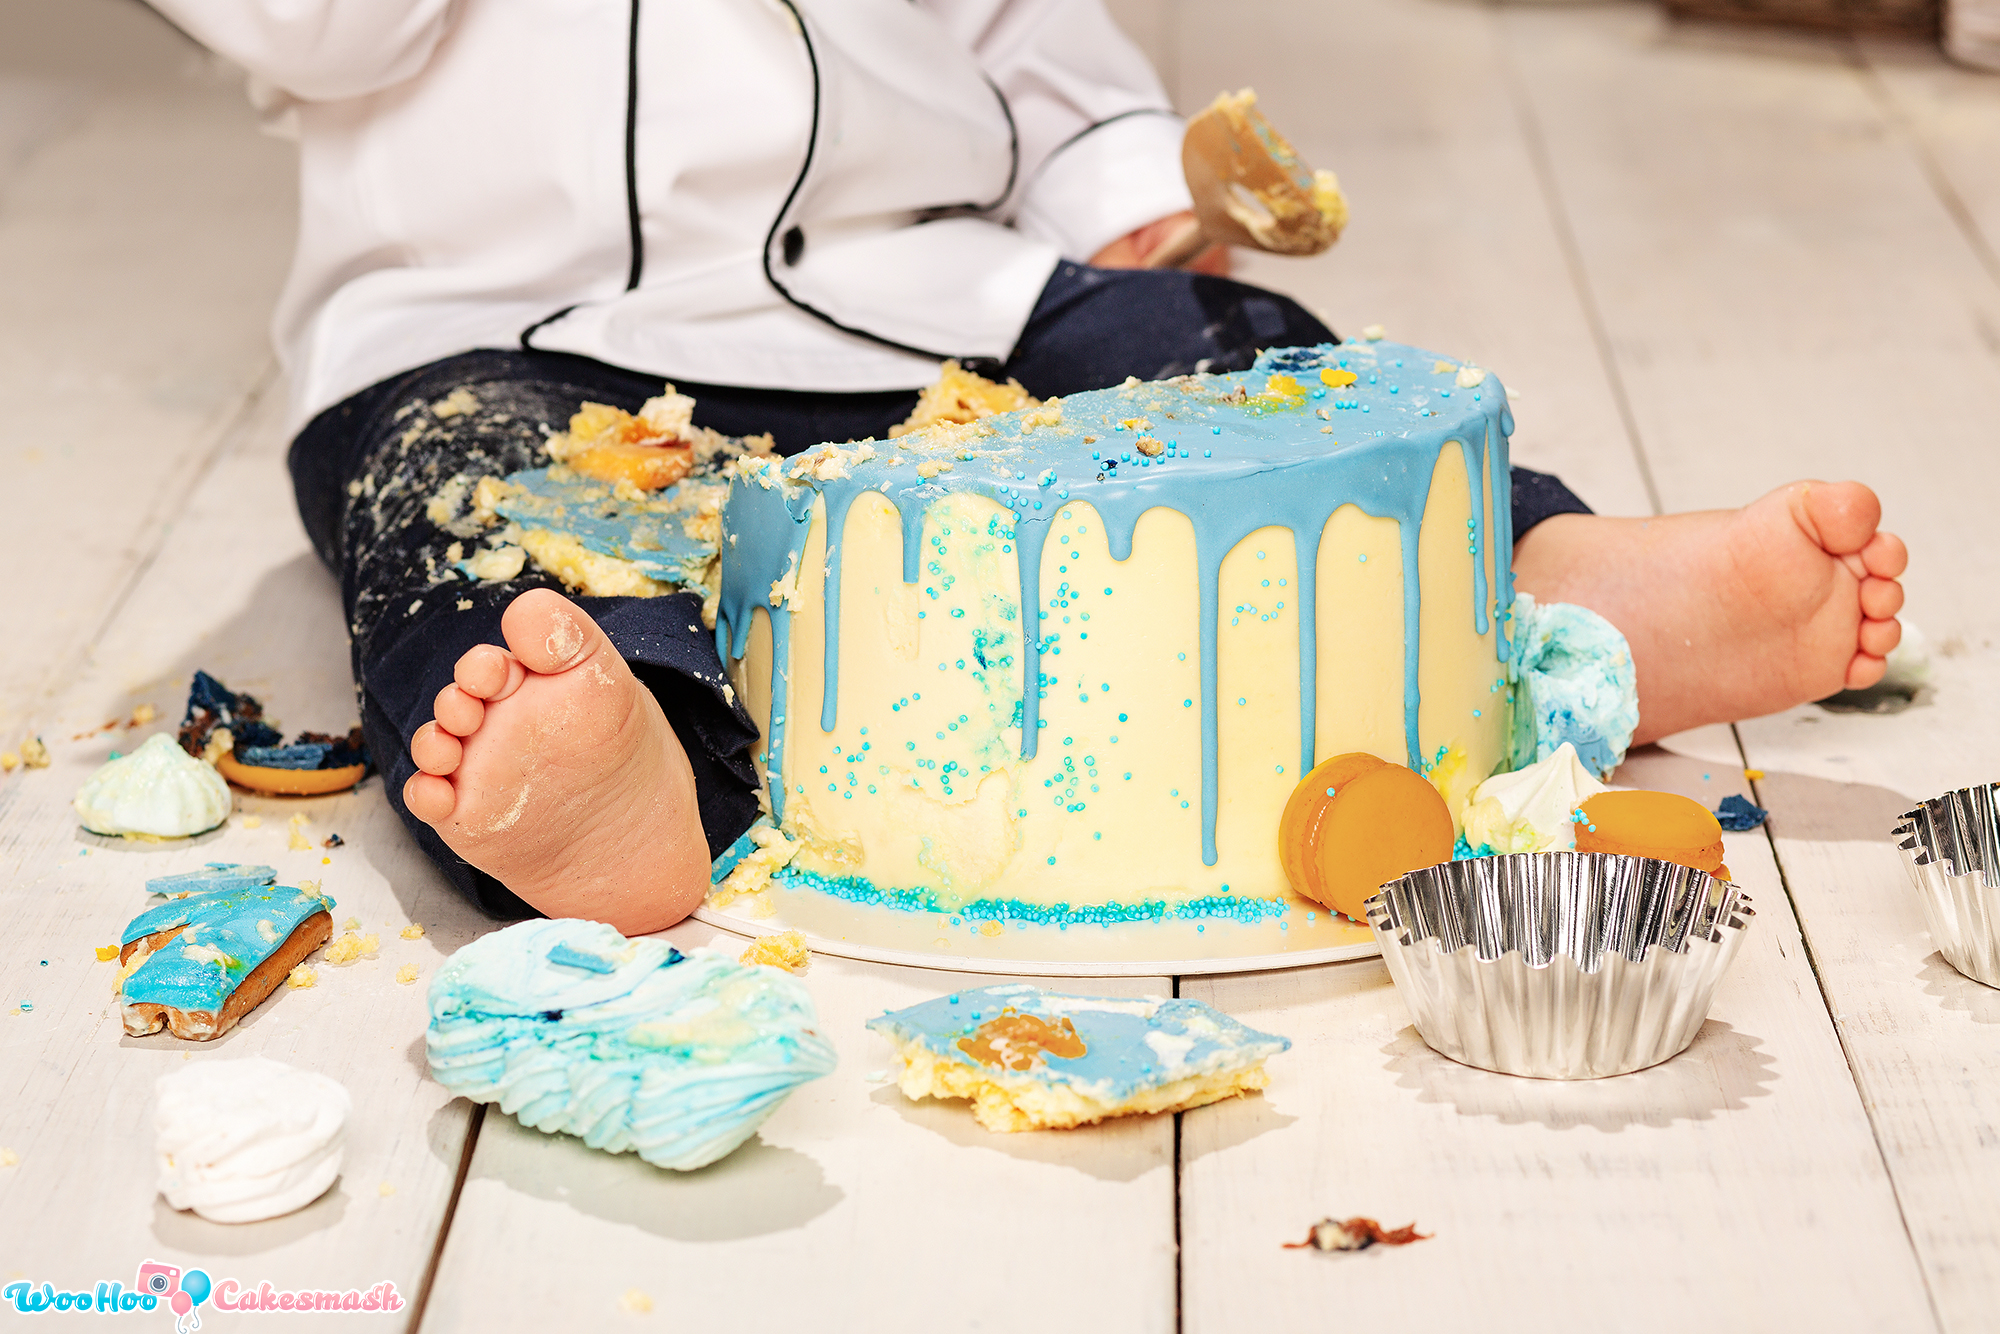 woohoo_cakesmash_David_povarenok_3